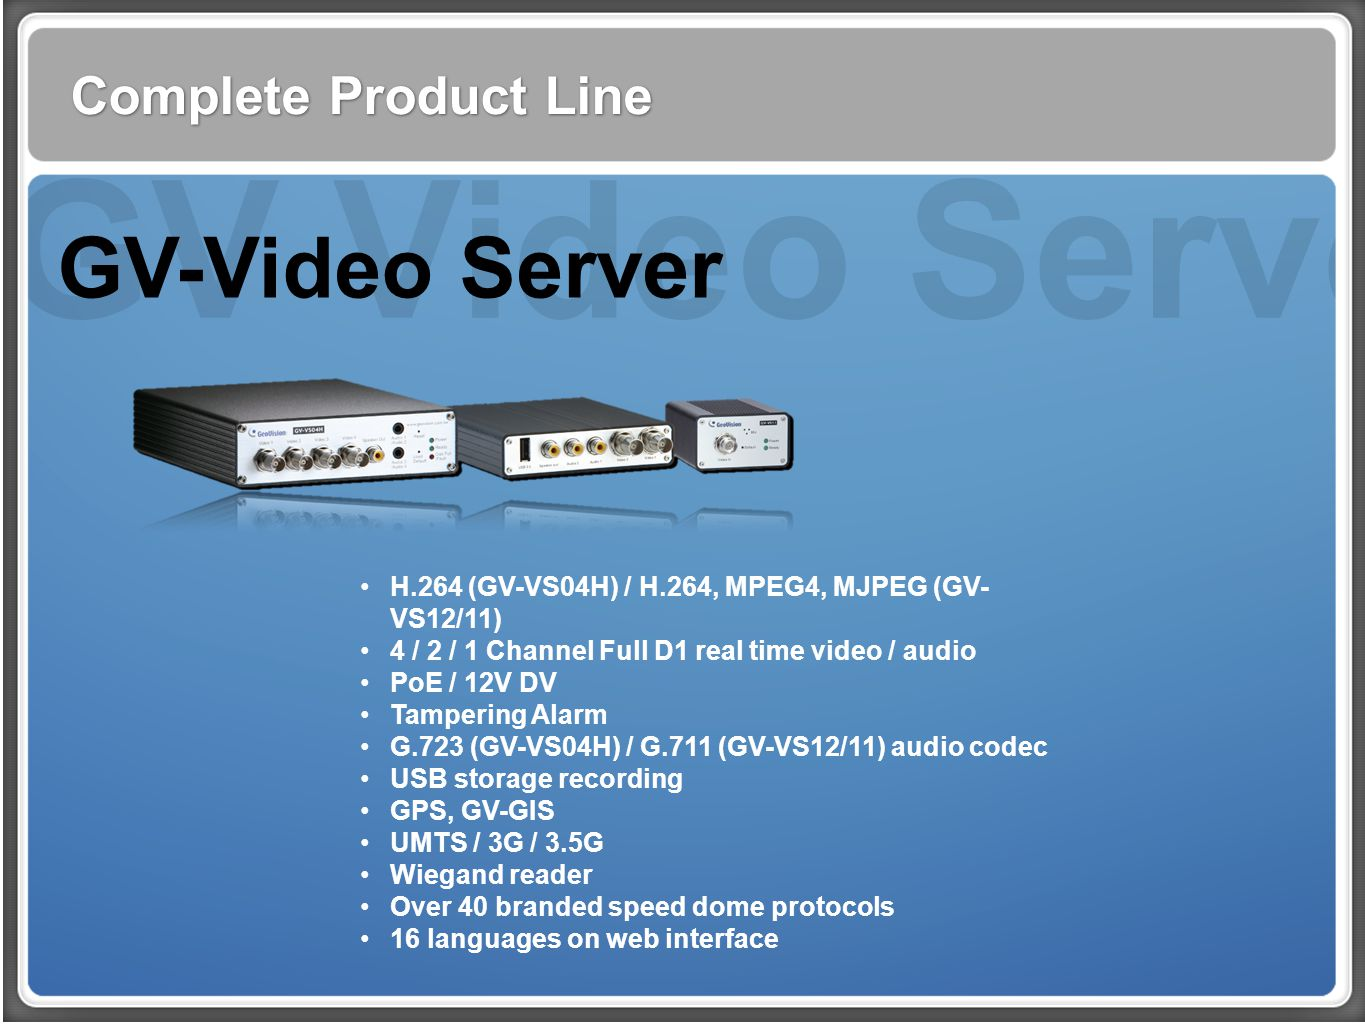 GV Video Server GV-Video Server Complete Product Line